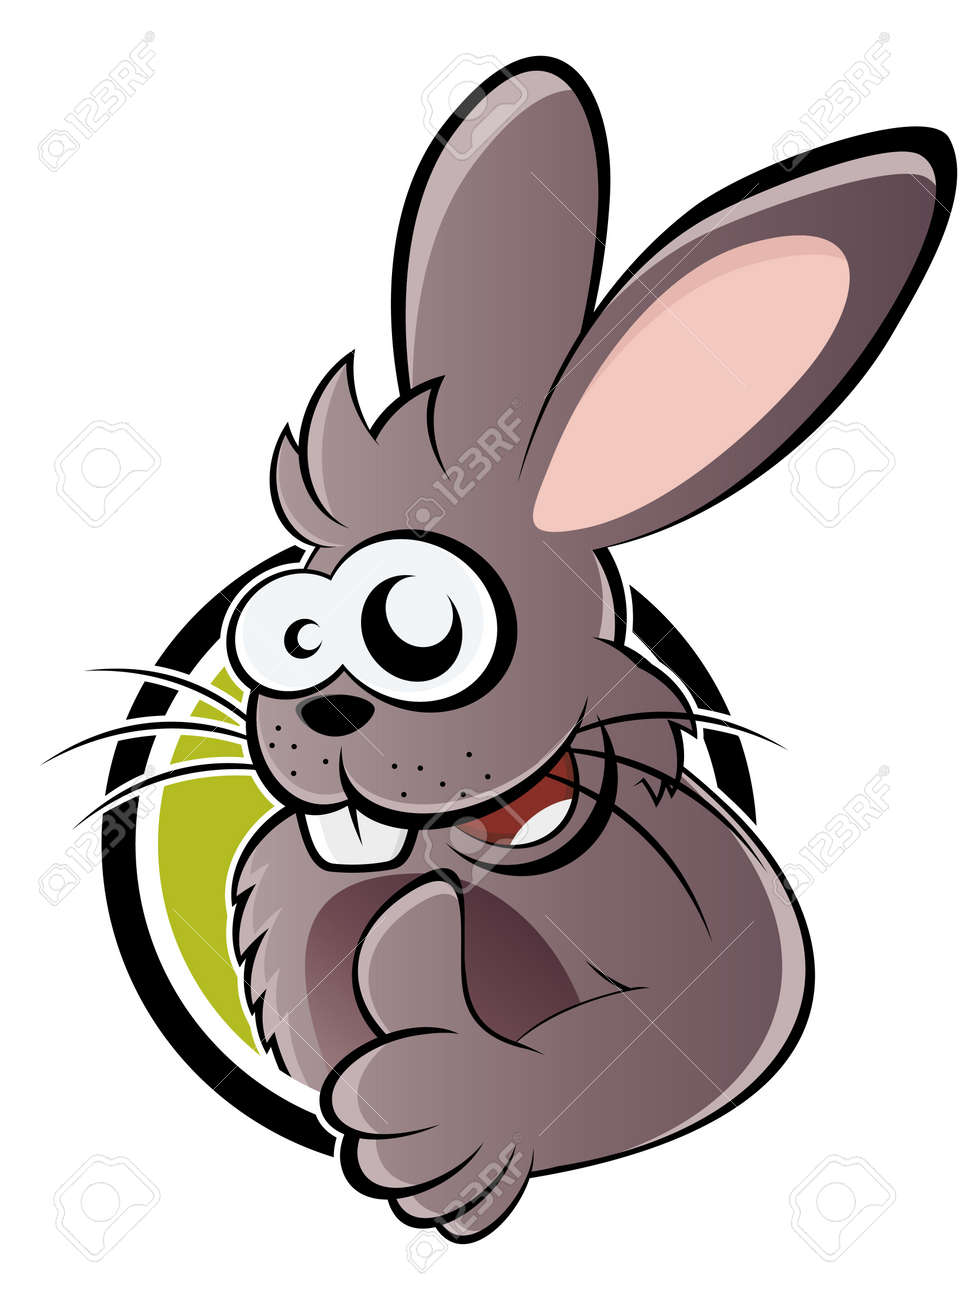 Funny rabbit funny rabbit pictures pictures of rabbits funny - Funny Cartoon Rabbit